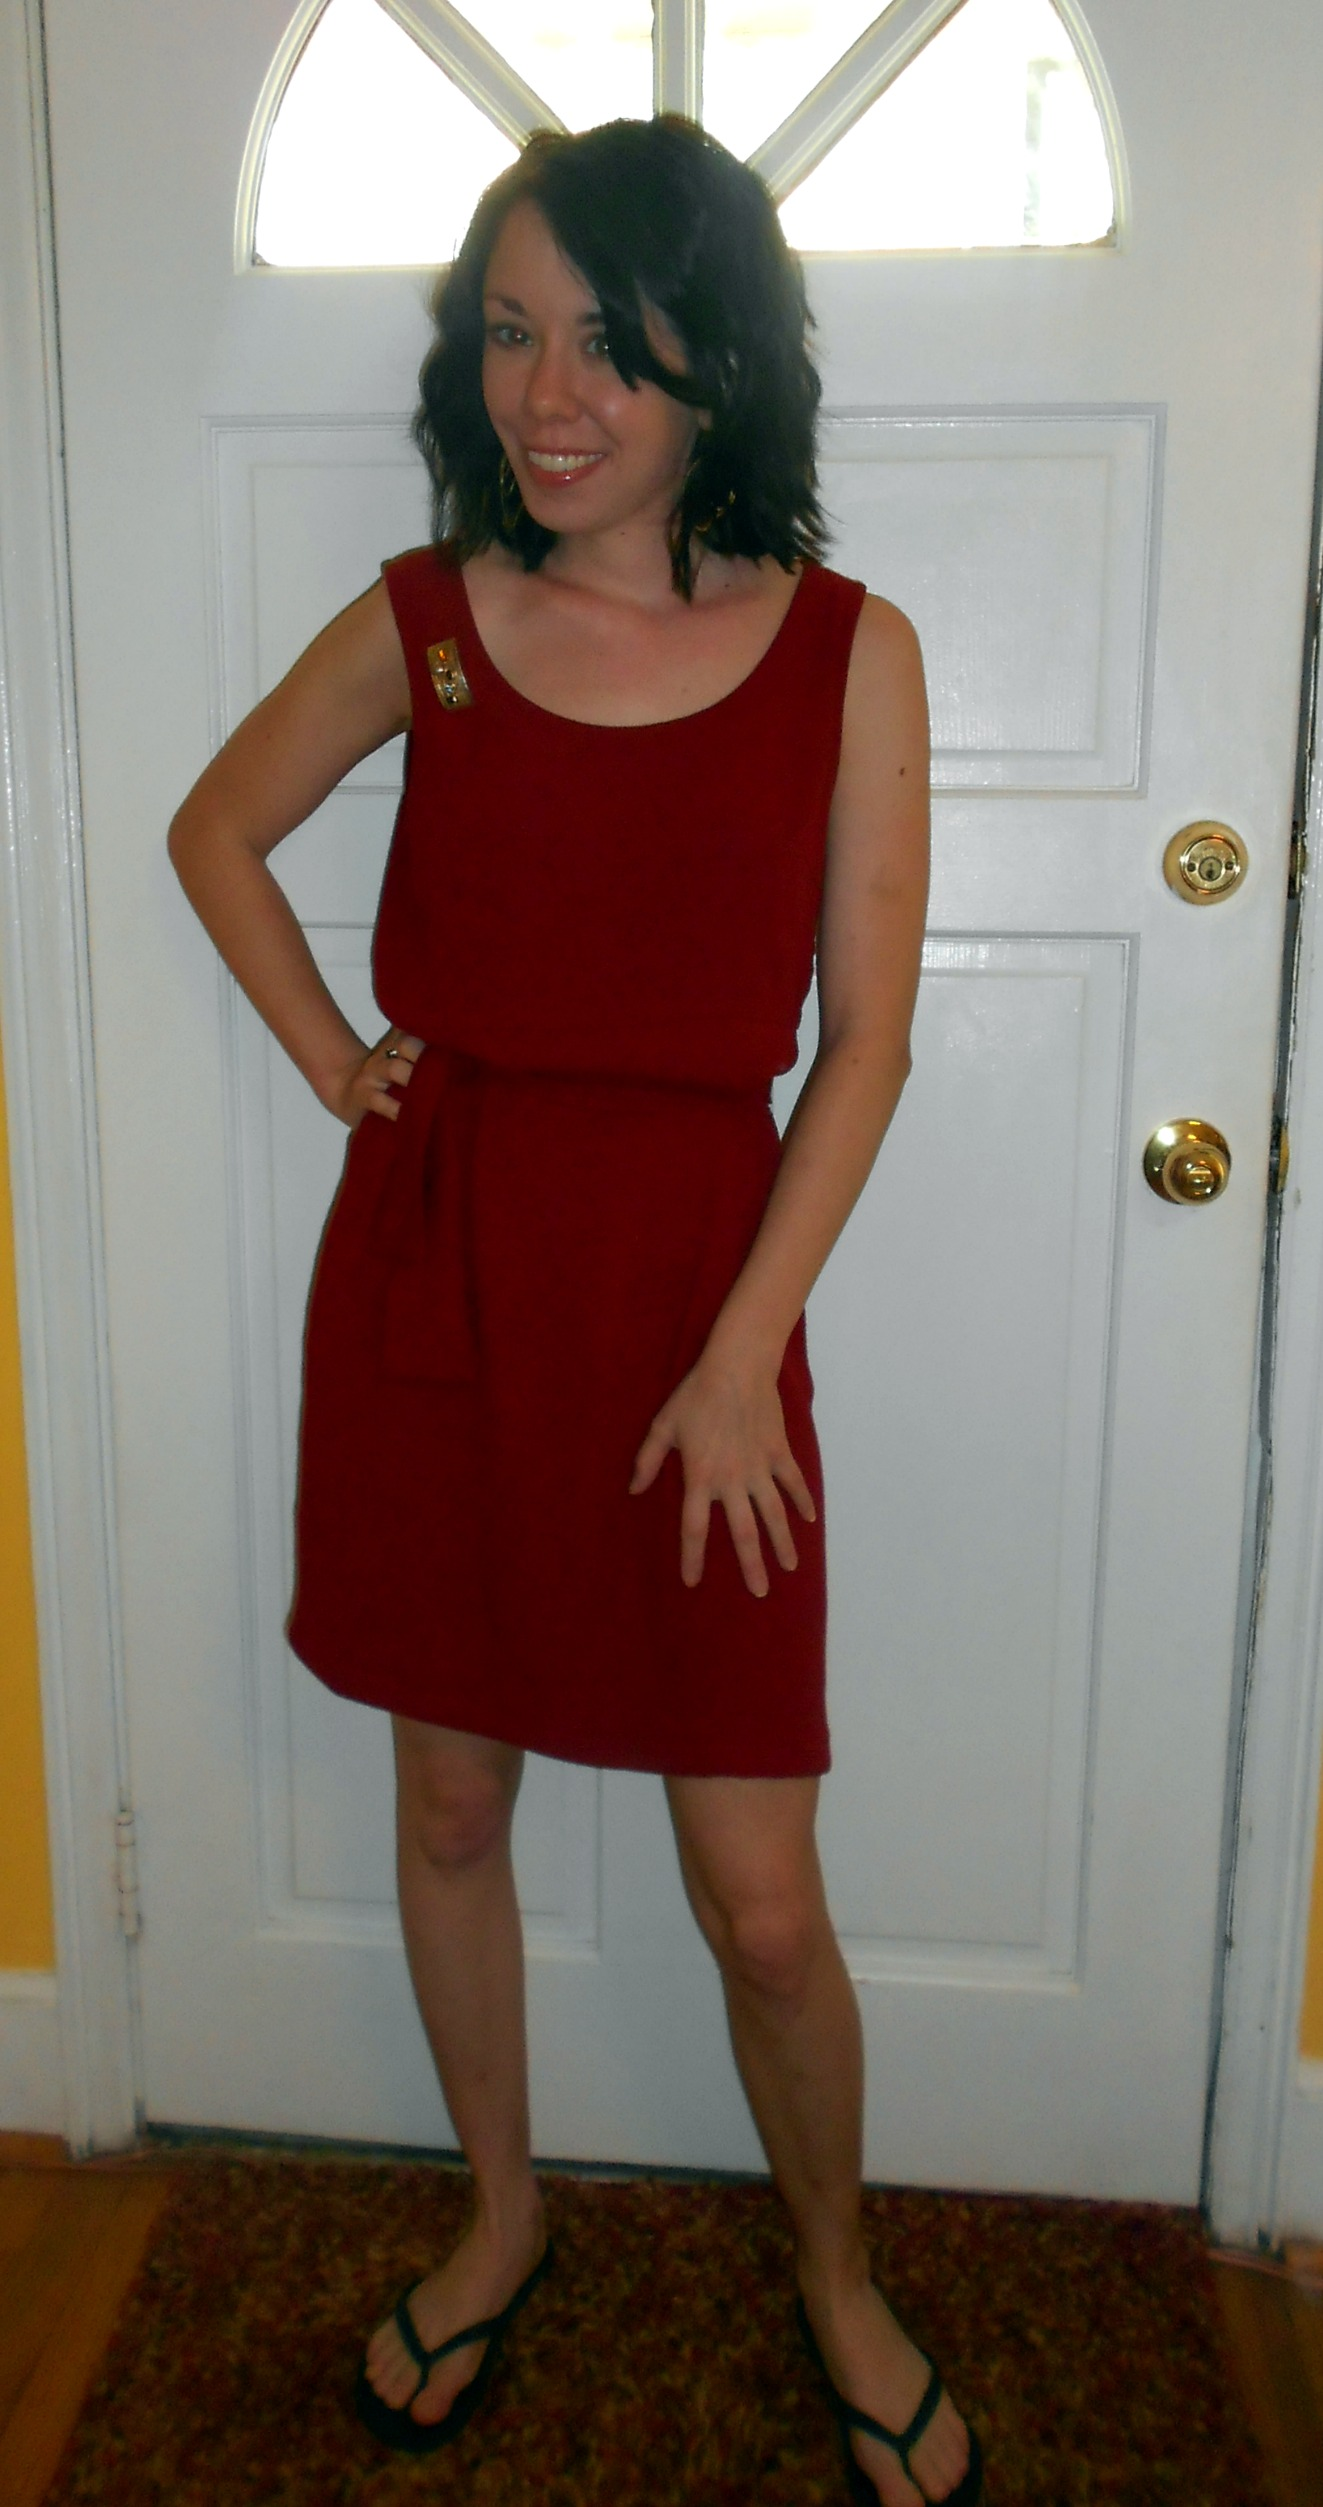 Day 259:  Seeing Red Dress 6